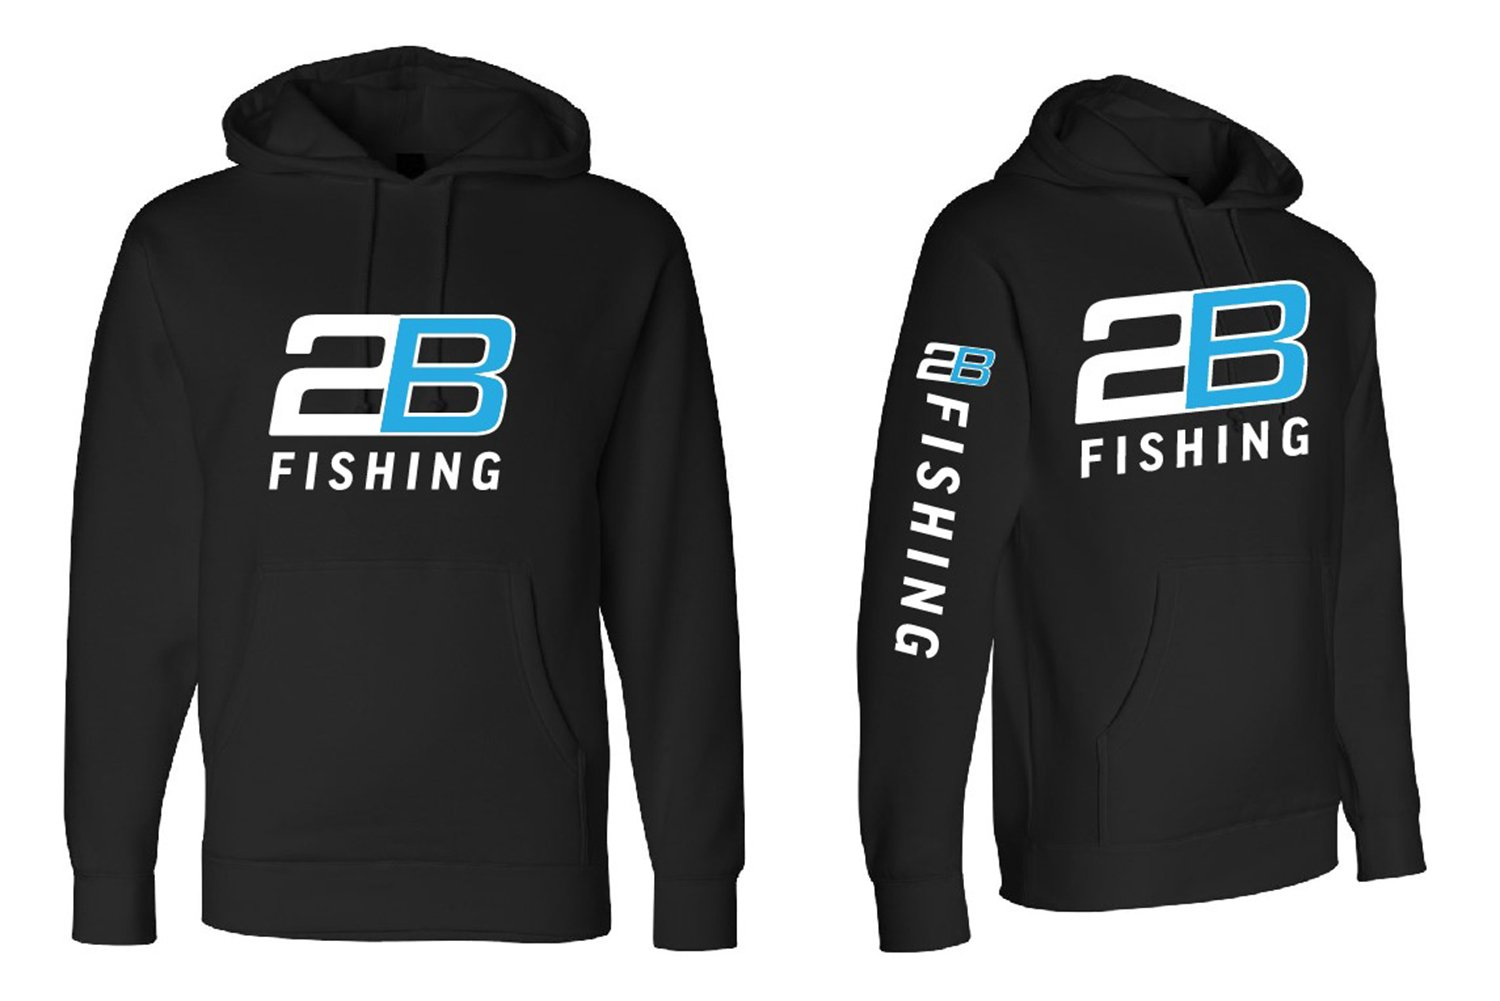 2B Fishing Sweatshirt - font-side